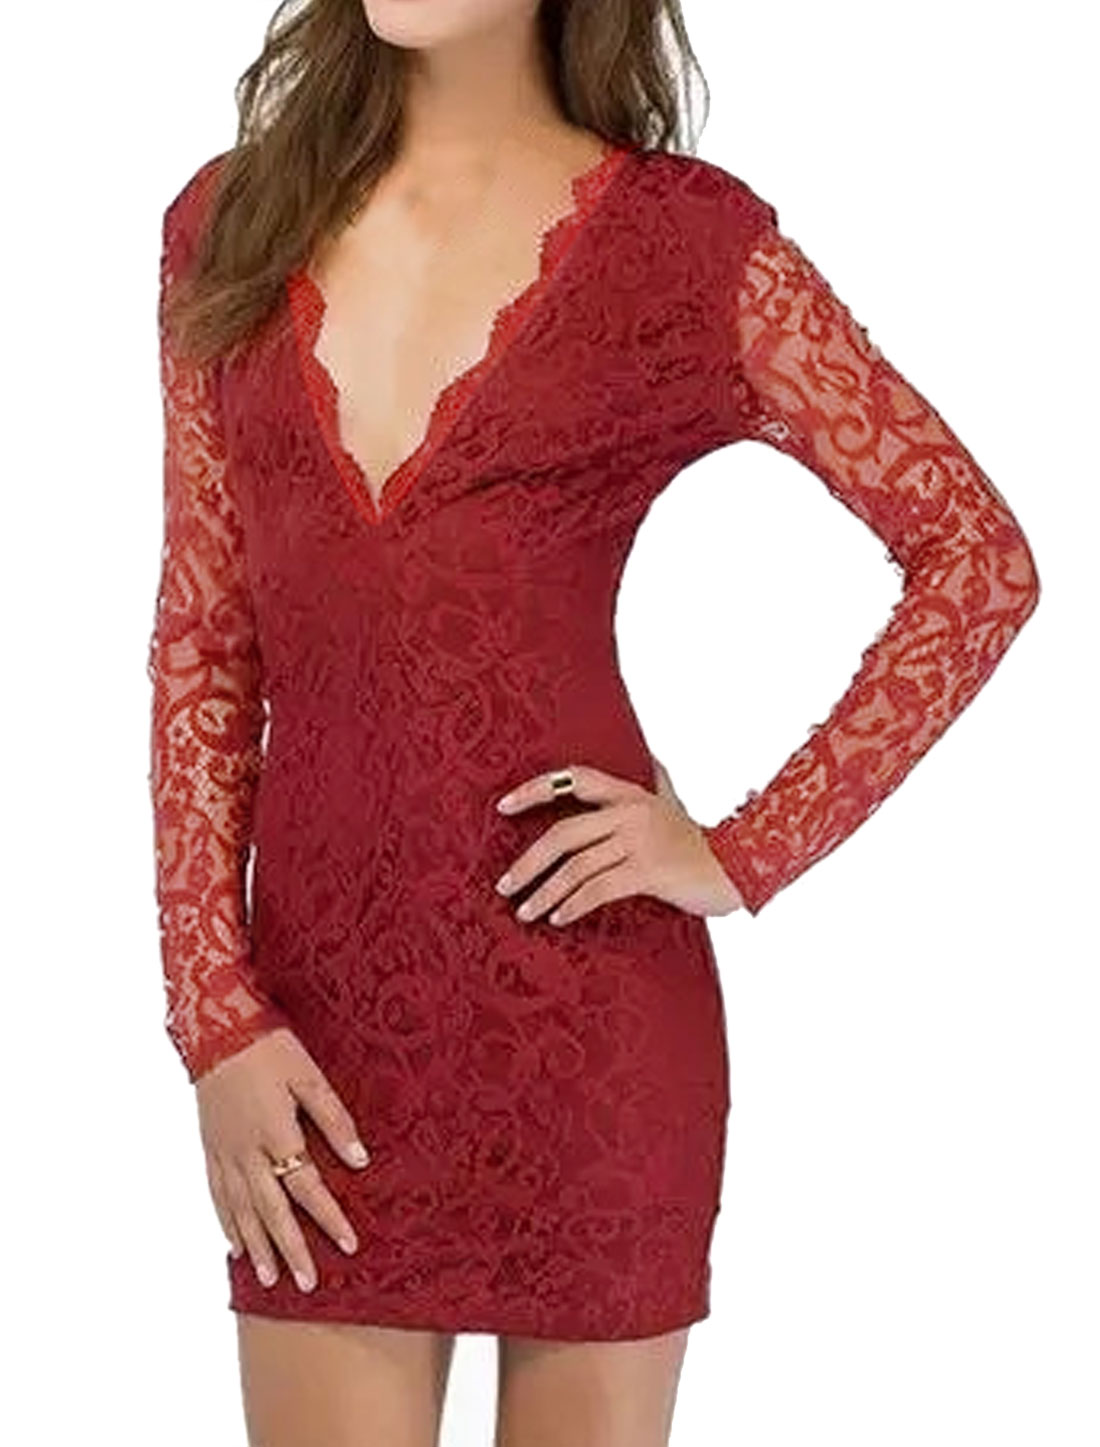 Lady Scalloped Neck V Neckline Long Sleeves Lace Bodycon Dress Red M